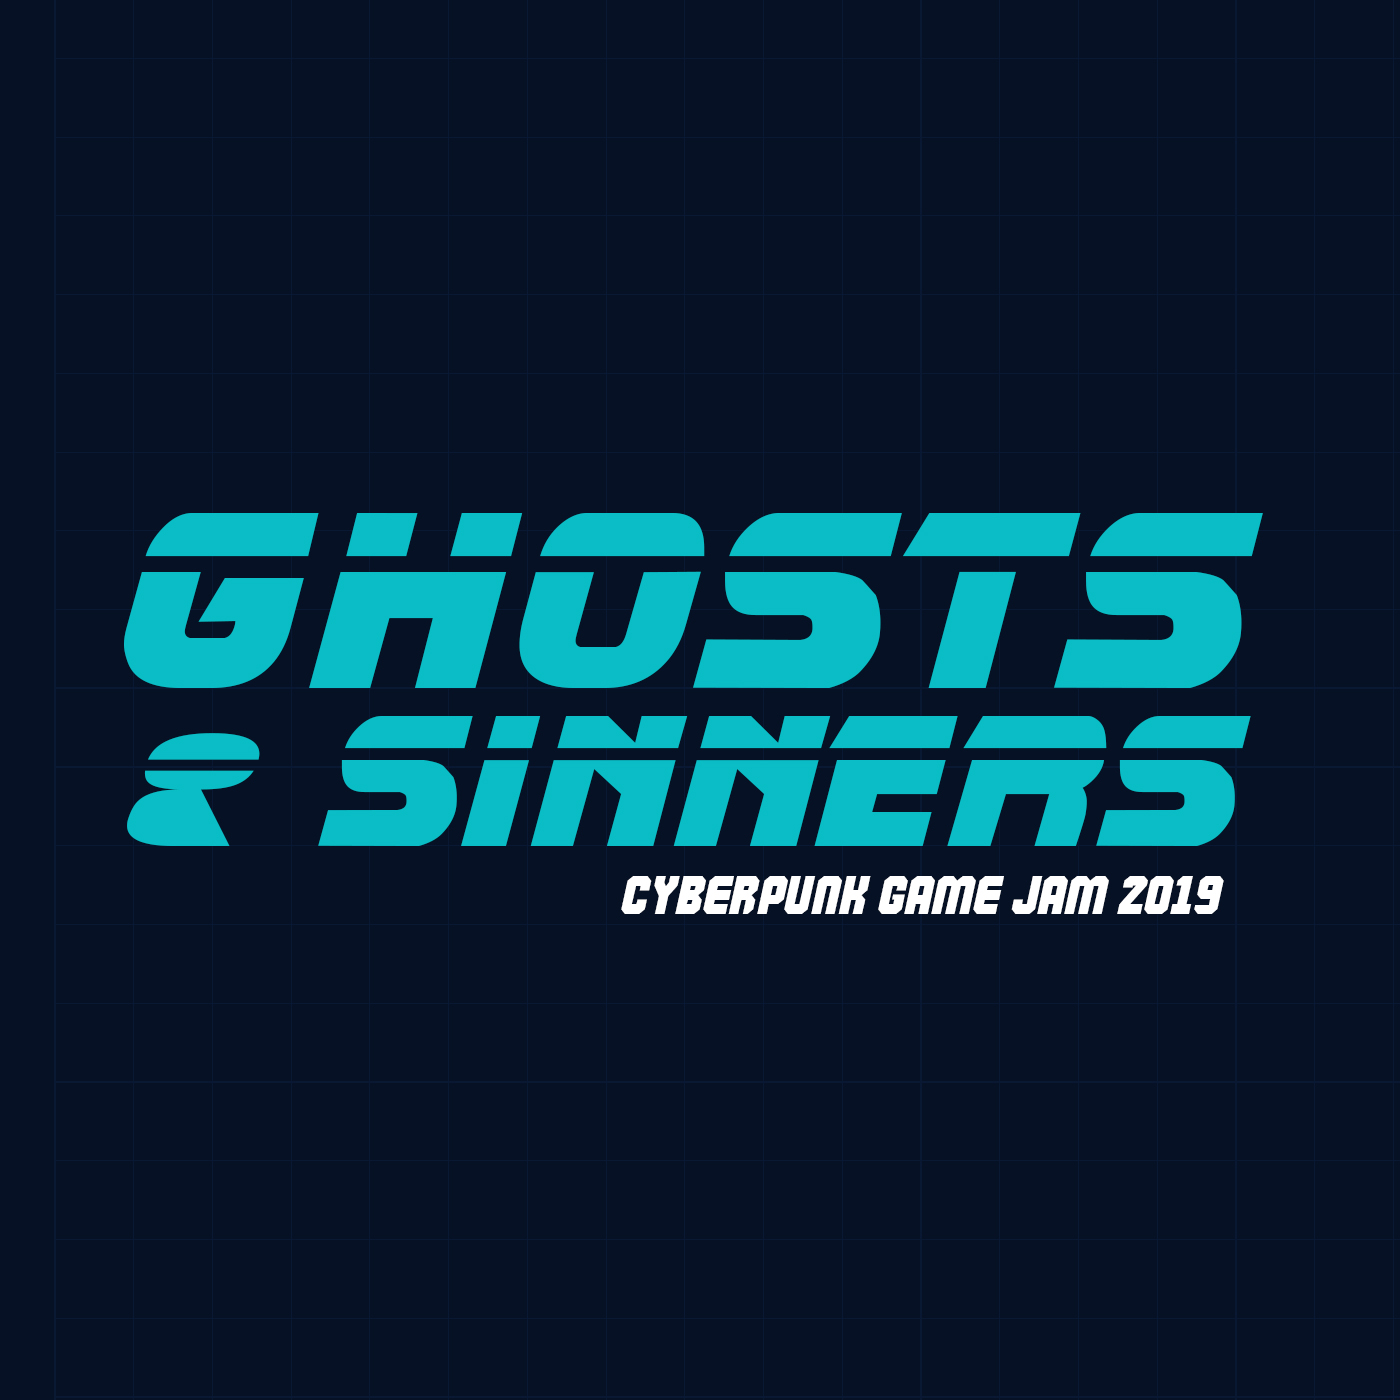 Ghosts & Sinners